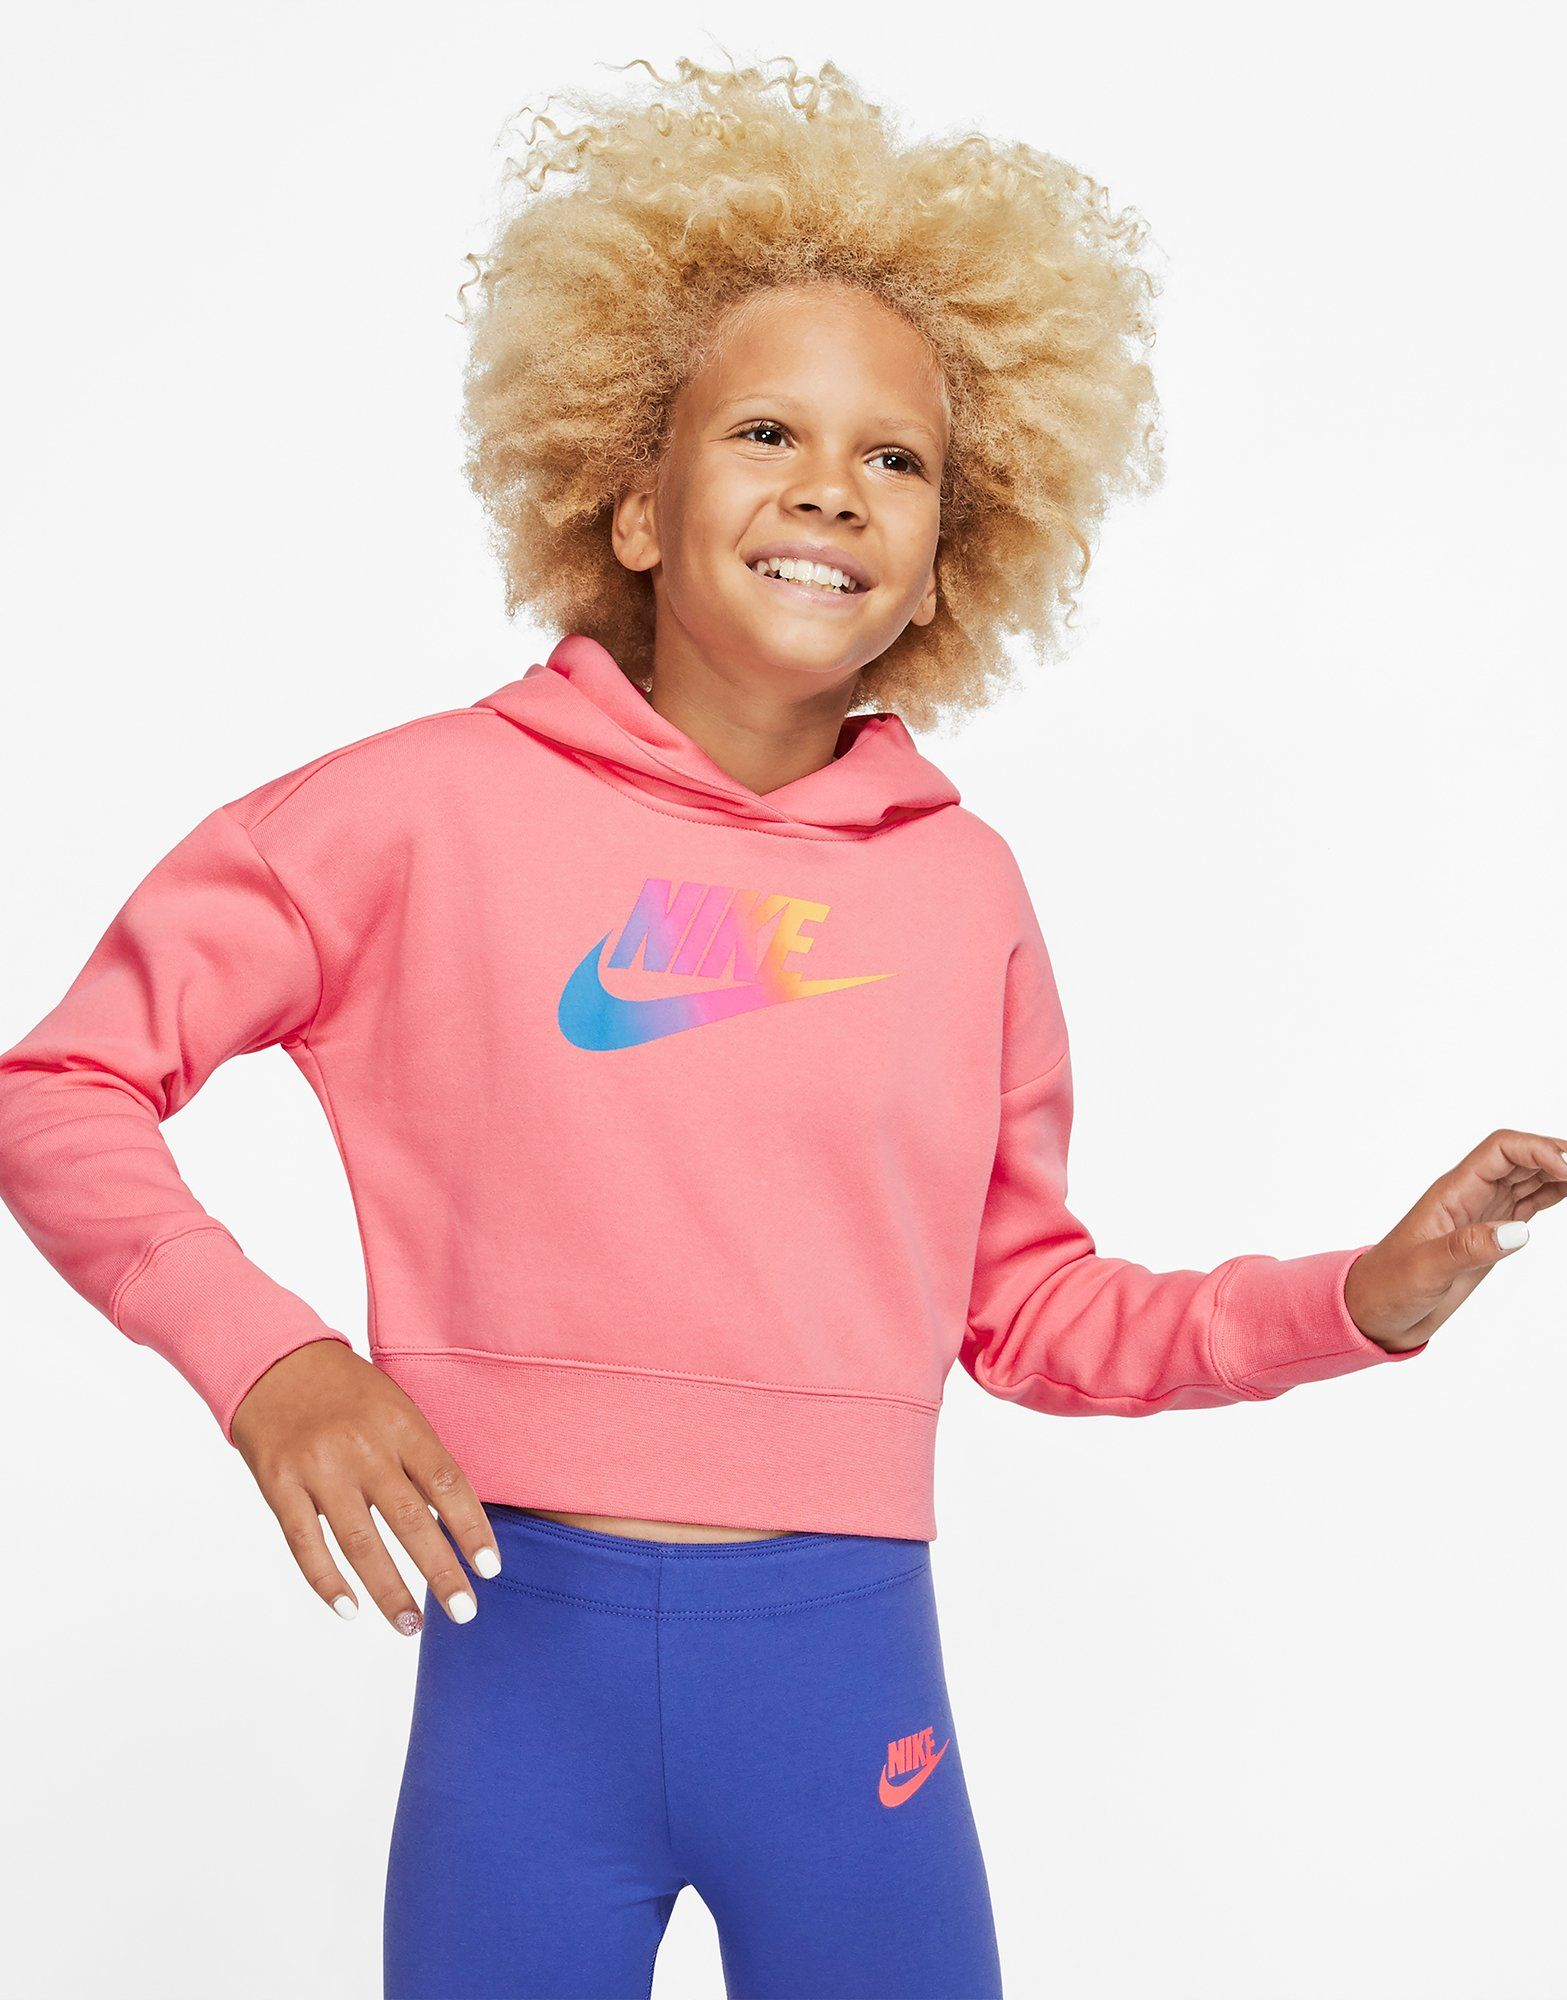 a637a31f1 Nike Nike Sportswear Older Kids' (Girls') Cropped Hoodie | JD Sports